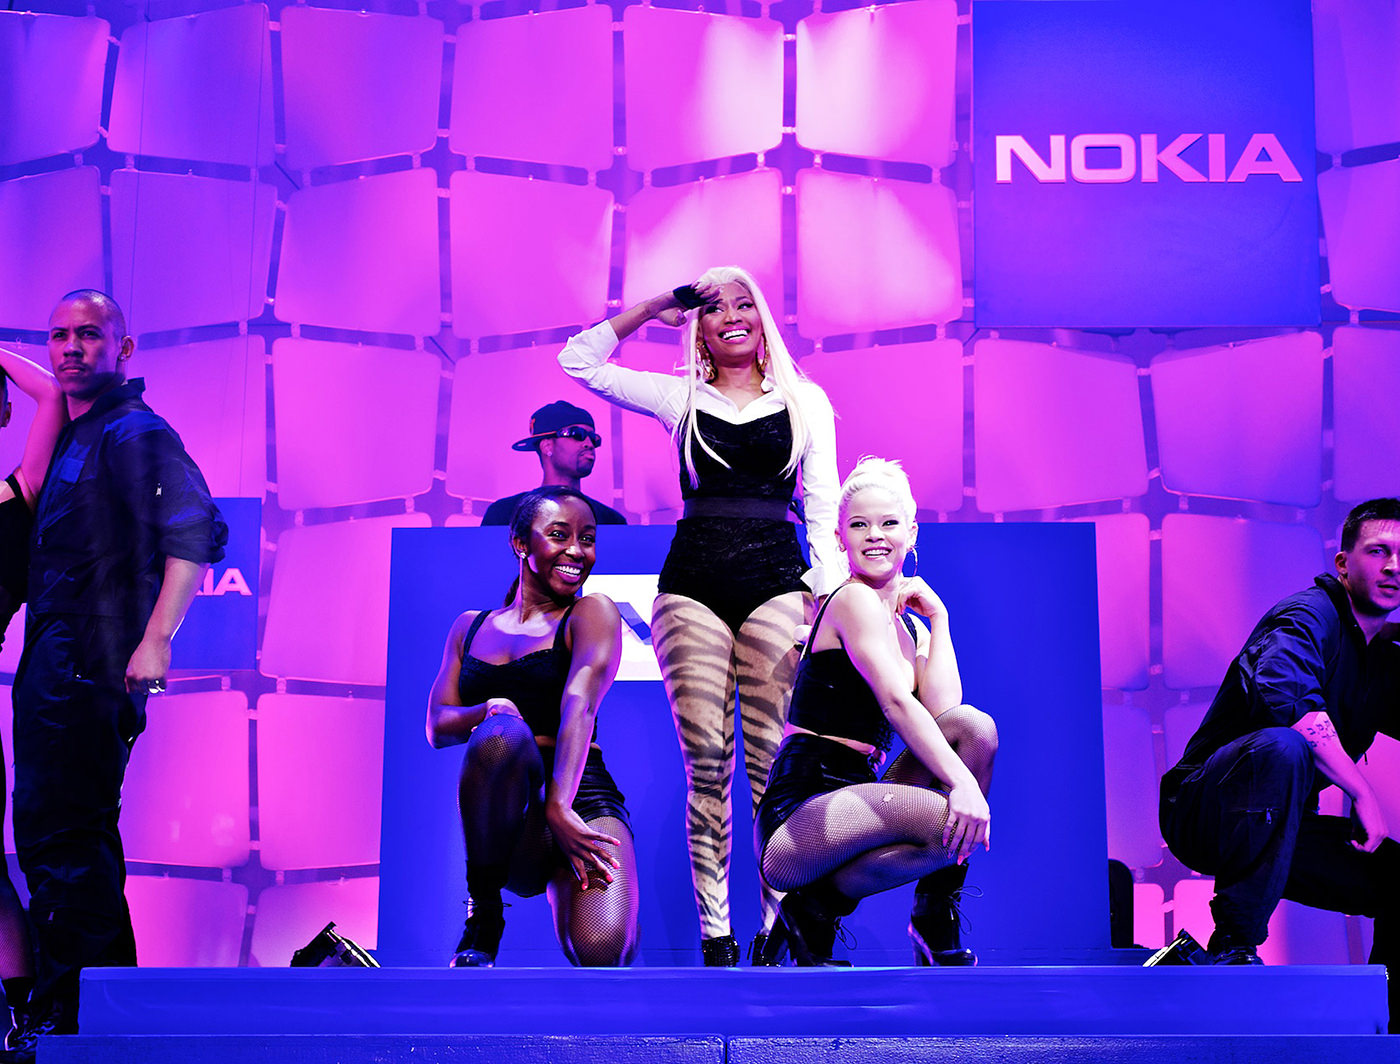 NOKIA BLUE BOX EVENT IN TIMES SQUARE WITH THE ONE AND ONLY NICKI MINAJ